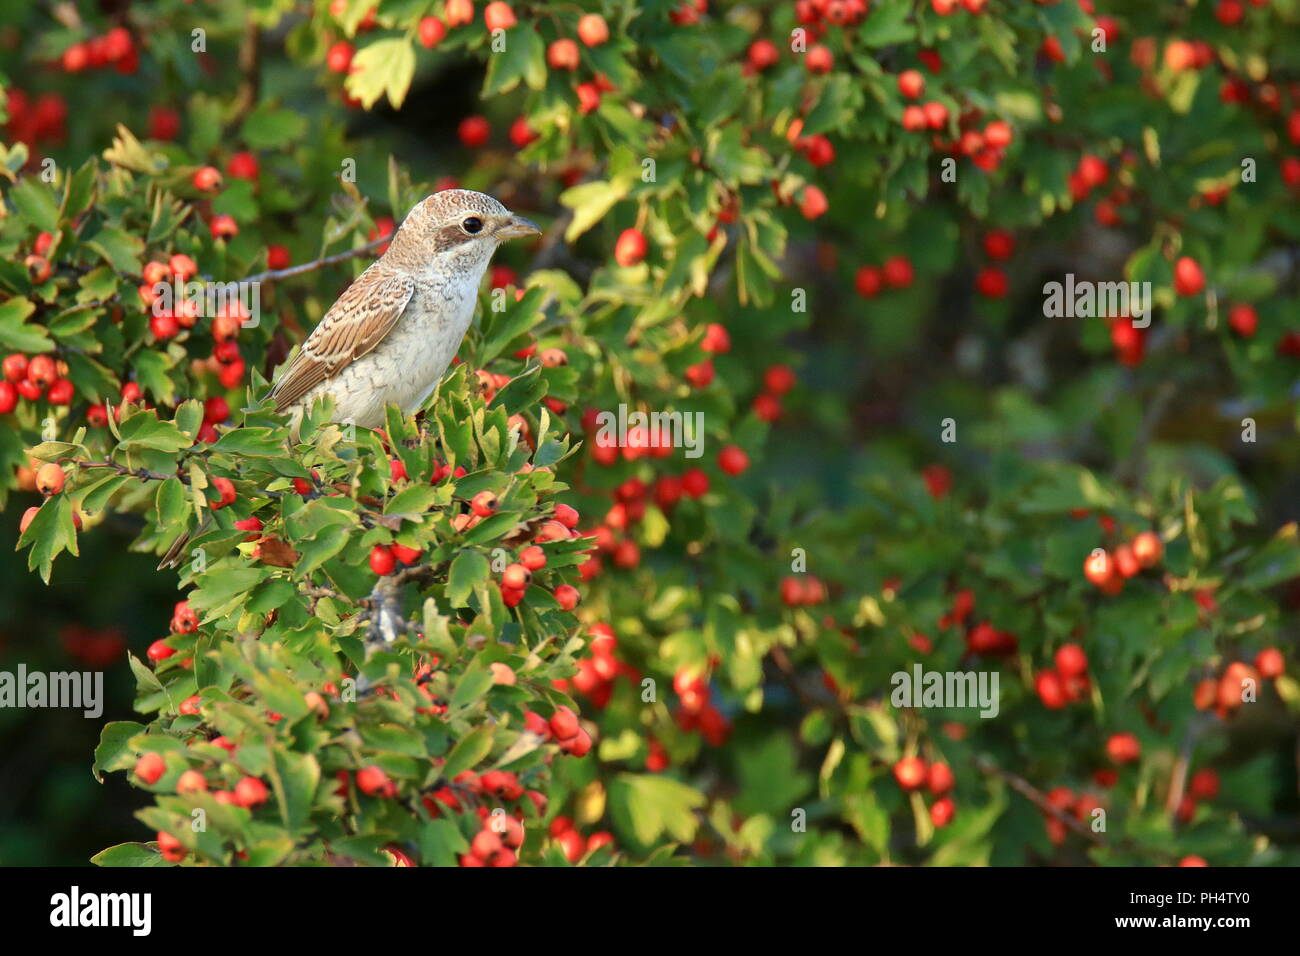 Woodchat shrike young on hawthorn tree - Stock Image